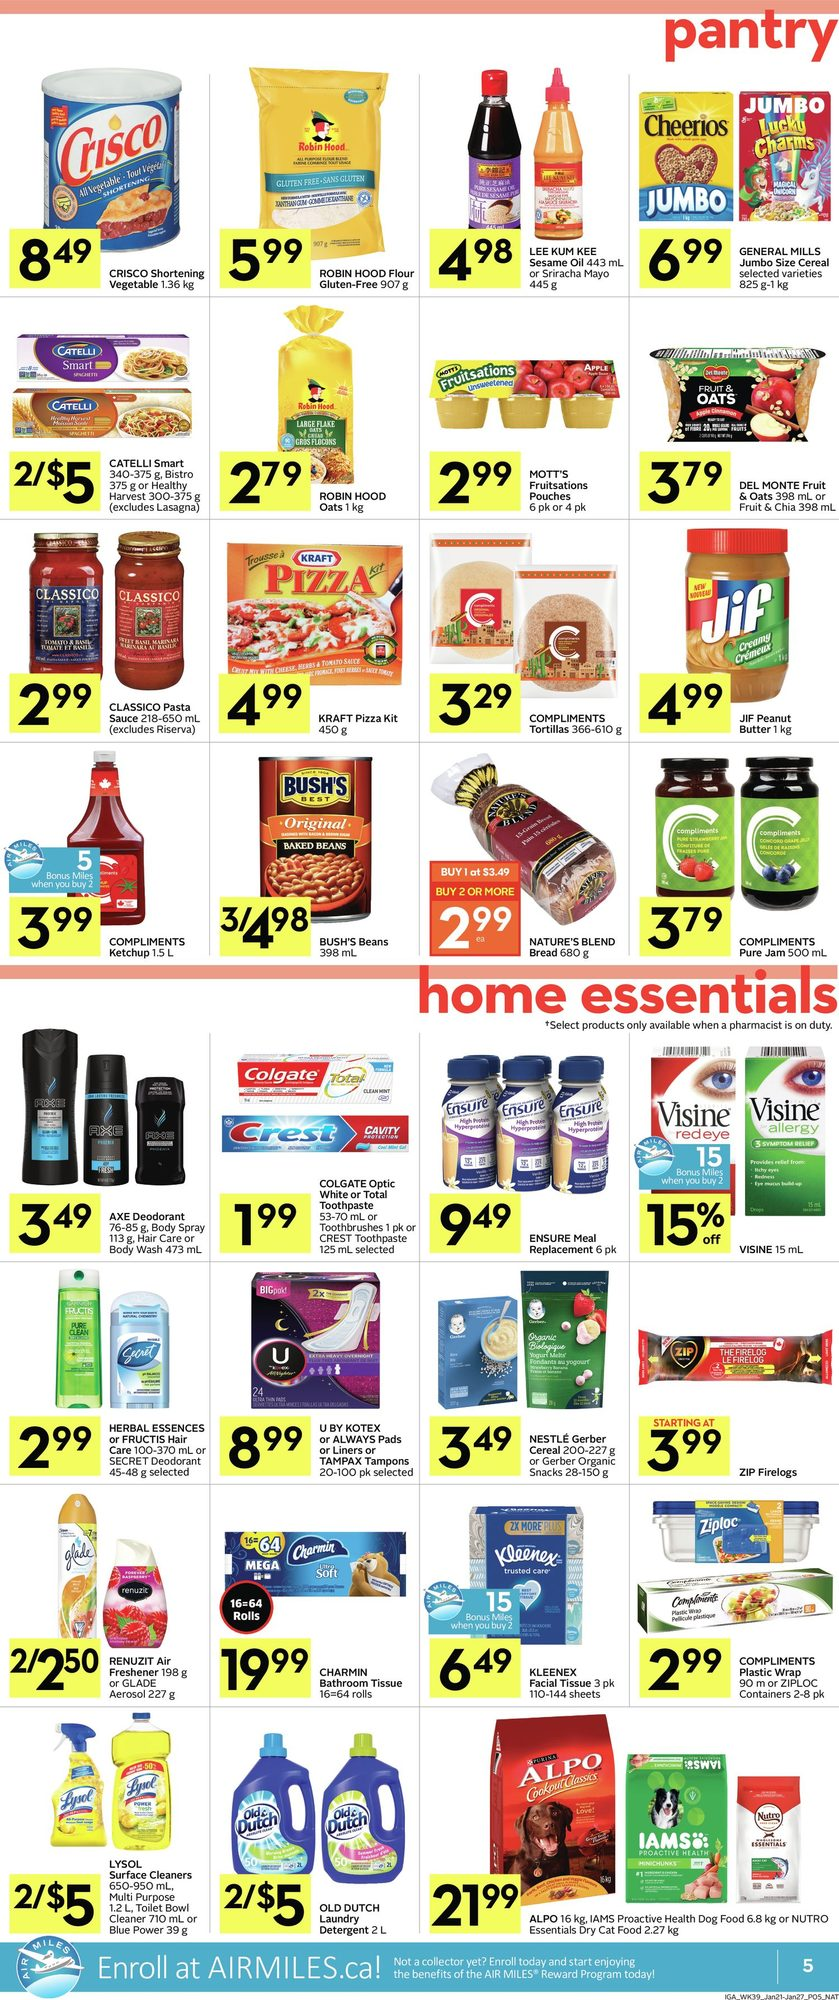 IGA - Weekly Flyer Specials - Page 5